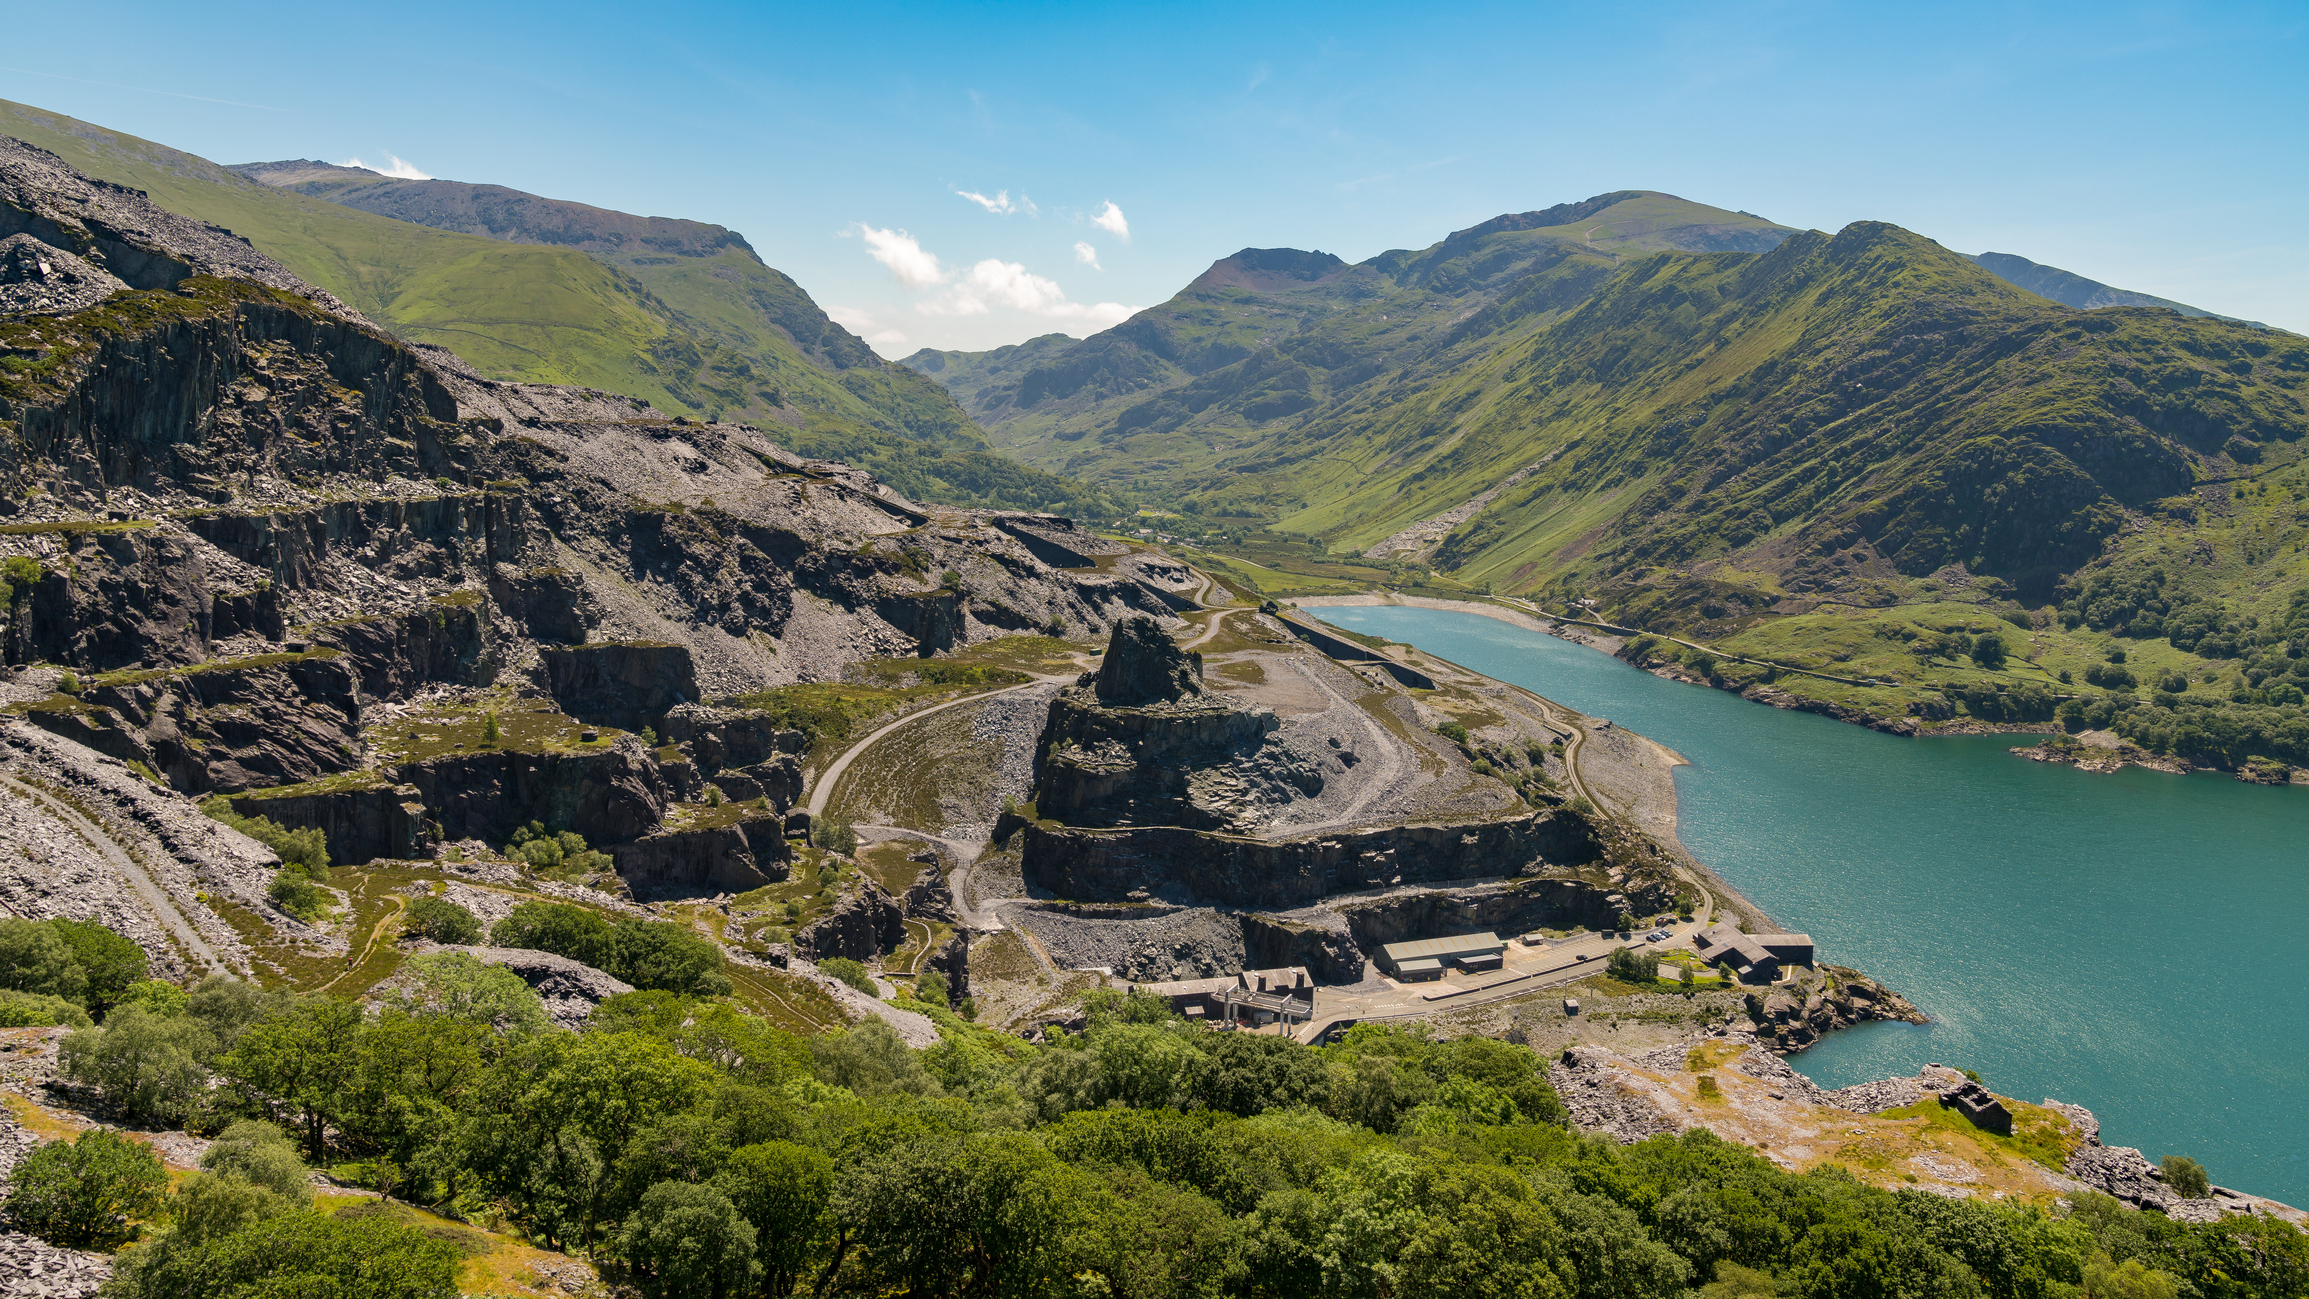 View from Dinorwic Quarry, near Llanberis, Gwynedd, Wales, UK - with Llyn Peris, the Dinorwig Power Station Facilities and Mount Snowdon in the background